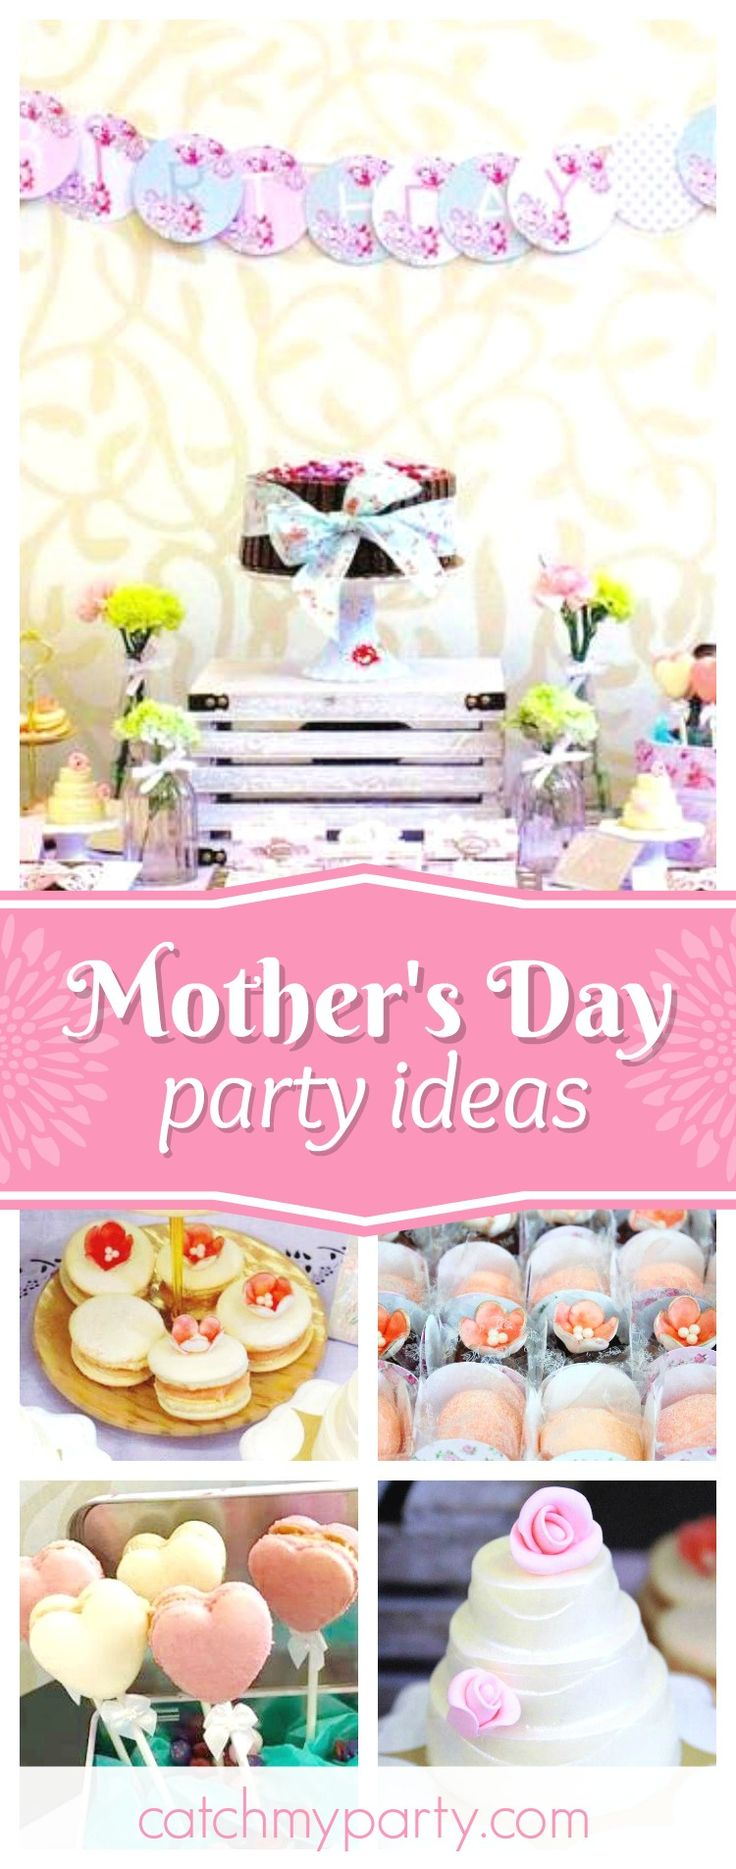 Decorating For A Party 257 best mother's day ideas images on pinterest | mother's day